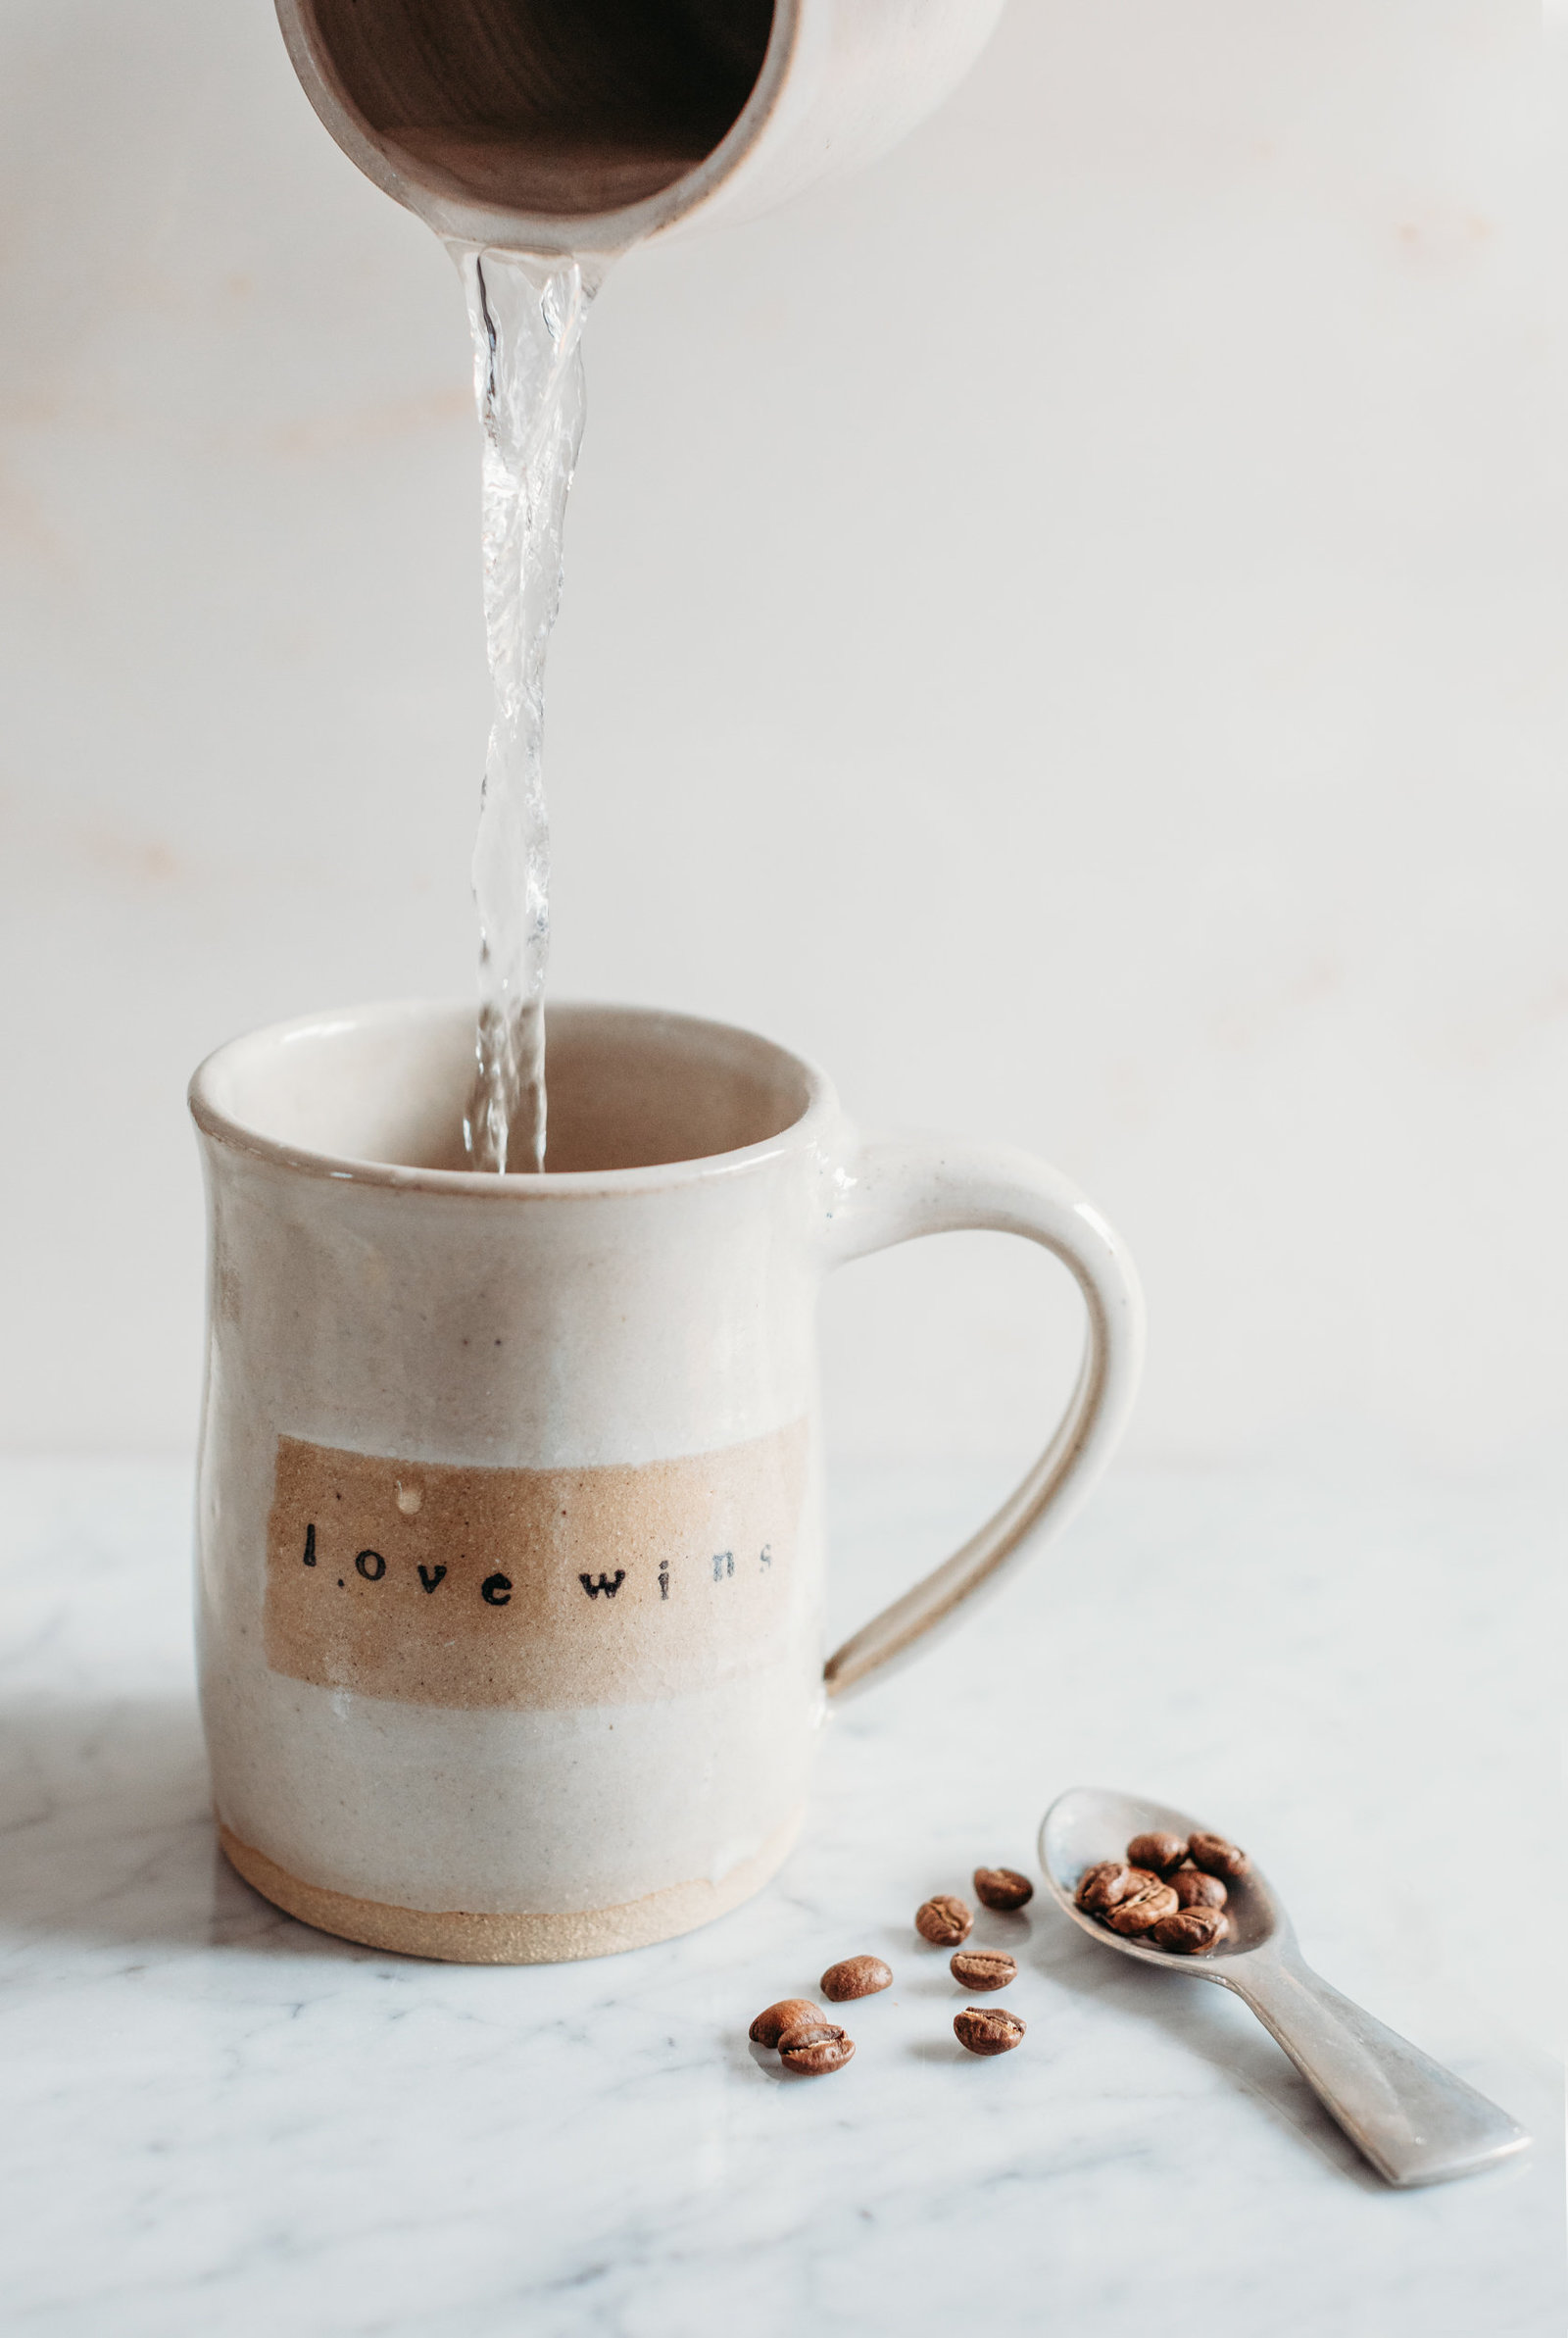 water is poured into coffee mug for product image